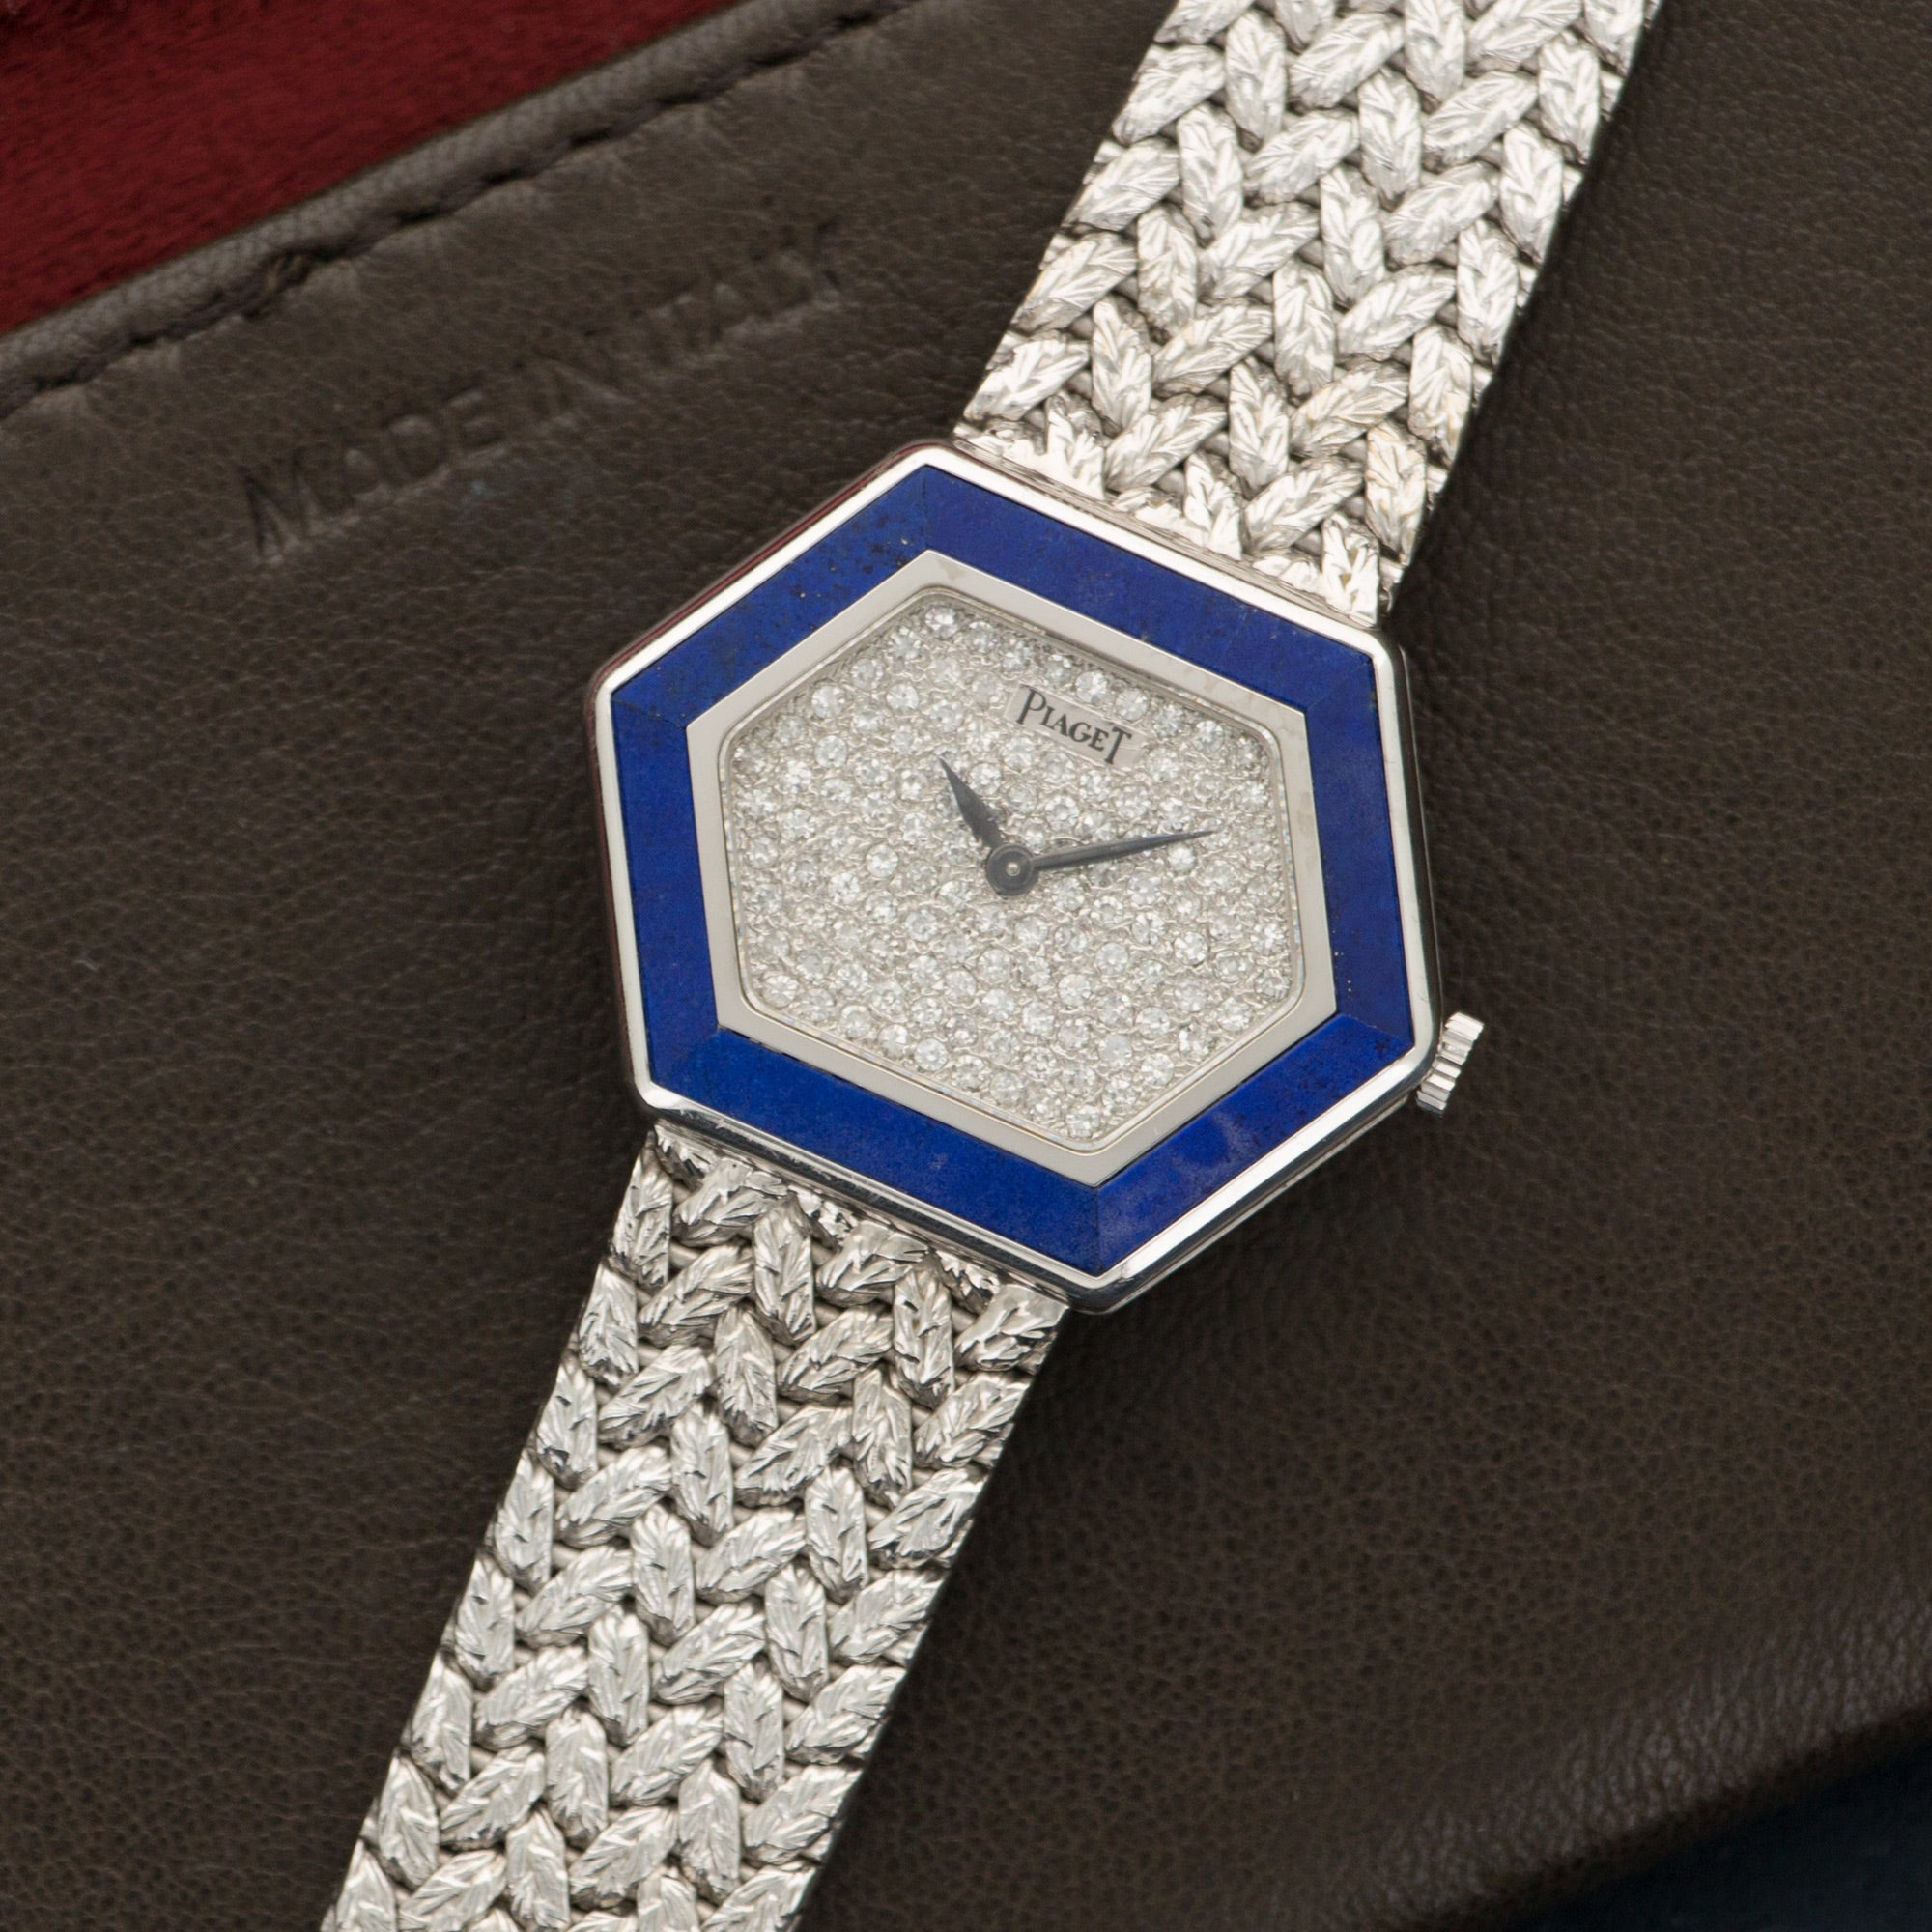 Piaget Vintage 9553 18k WG  Excellent Ladies 18k WG Pave Diamond 30mm Manual 1970s White Gold Bracelet (165mm) Handmade Leather Travel Pouch